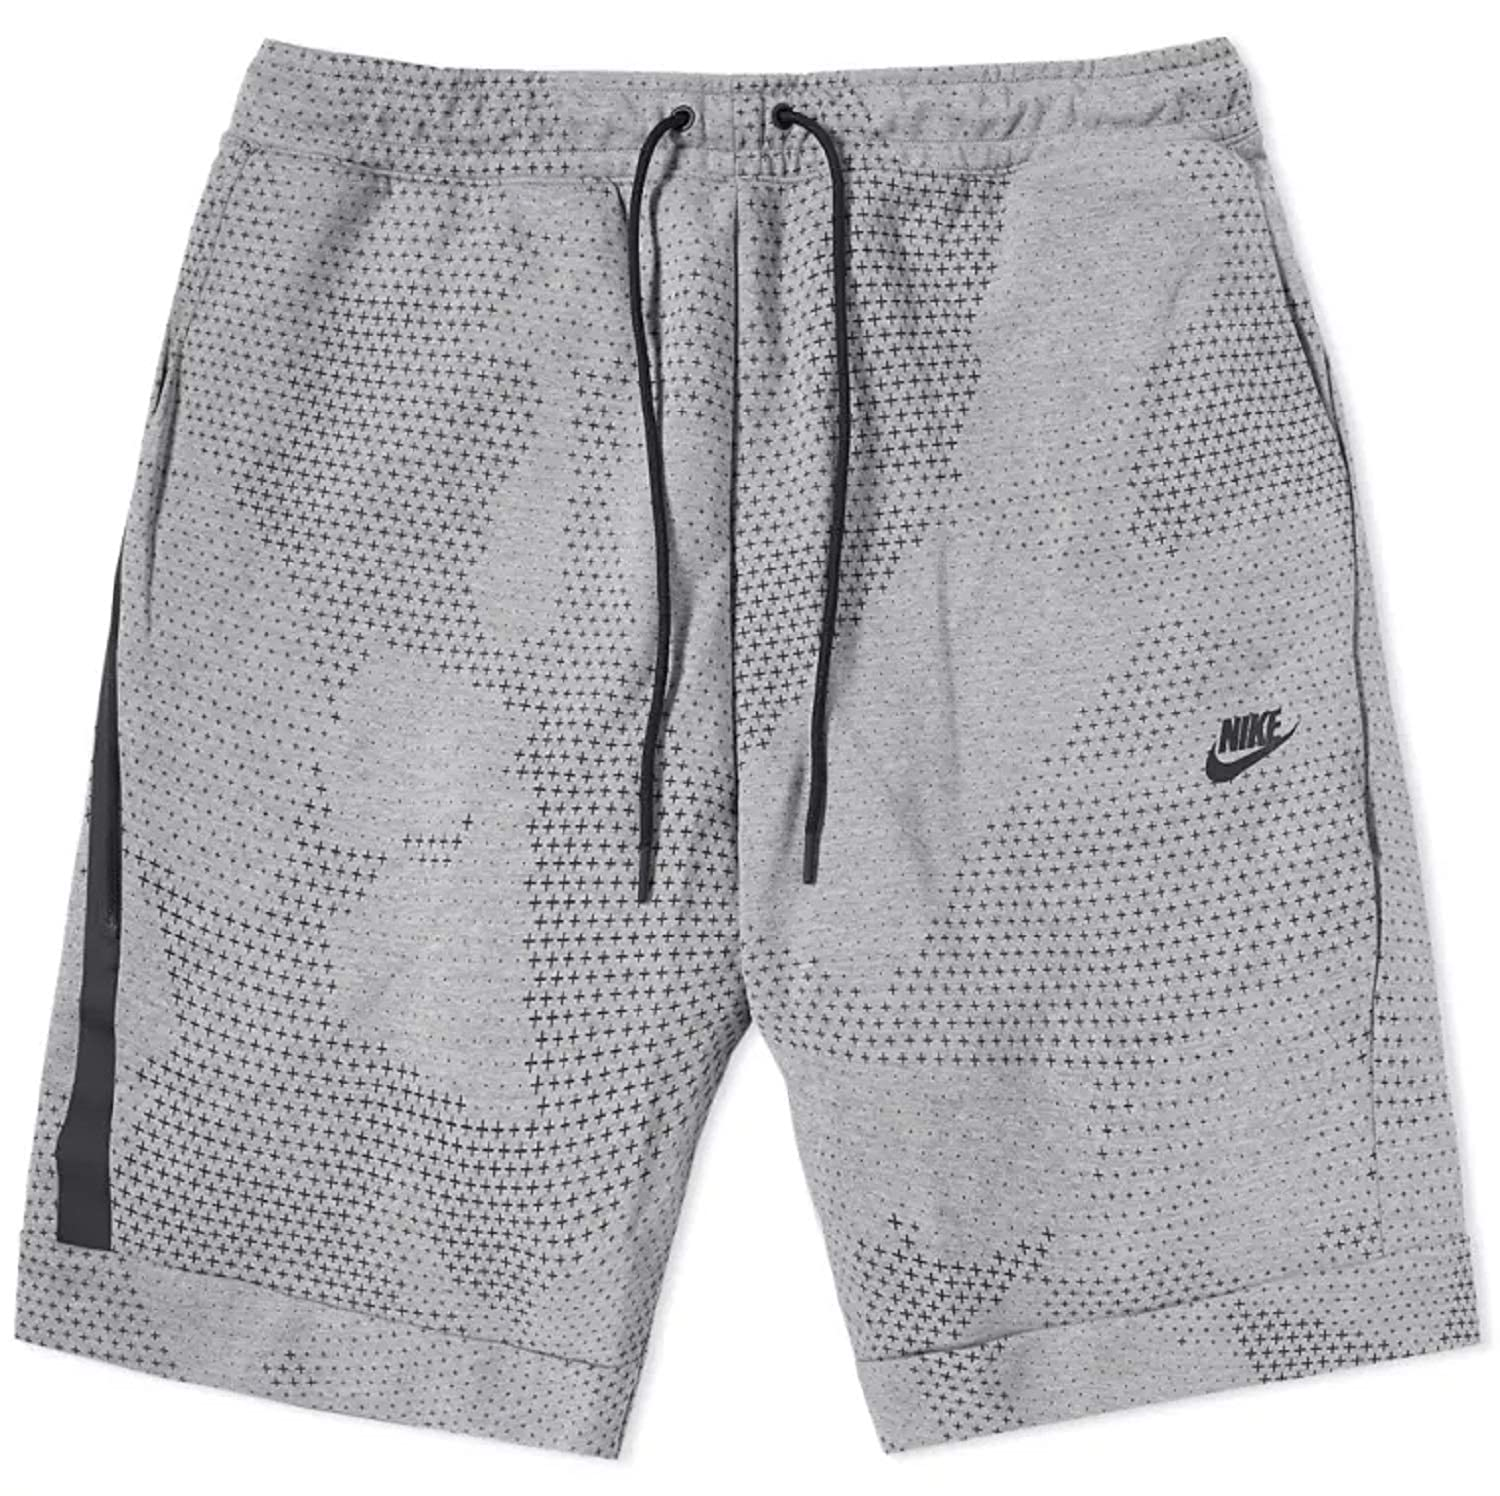 140899ef0a0f NIKE Sportswear Tech Fleece Men s Shorts at Amazon Men s Clothing store